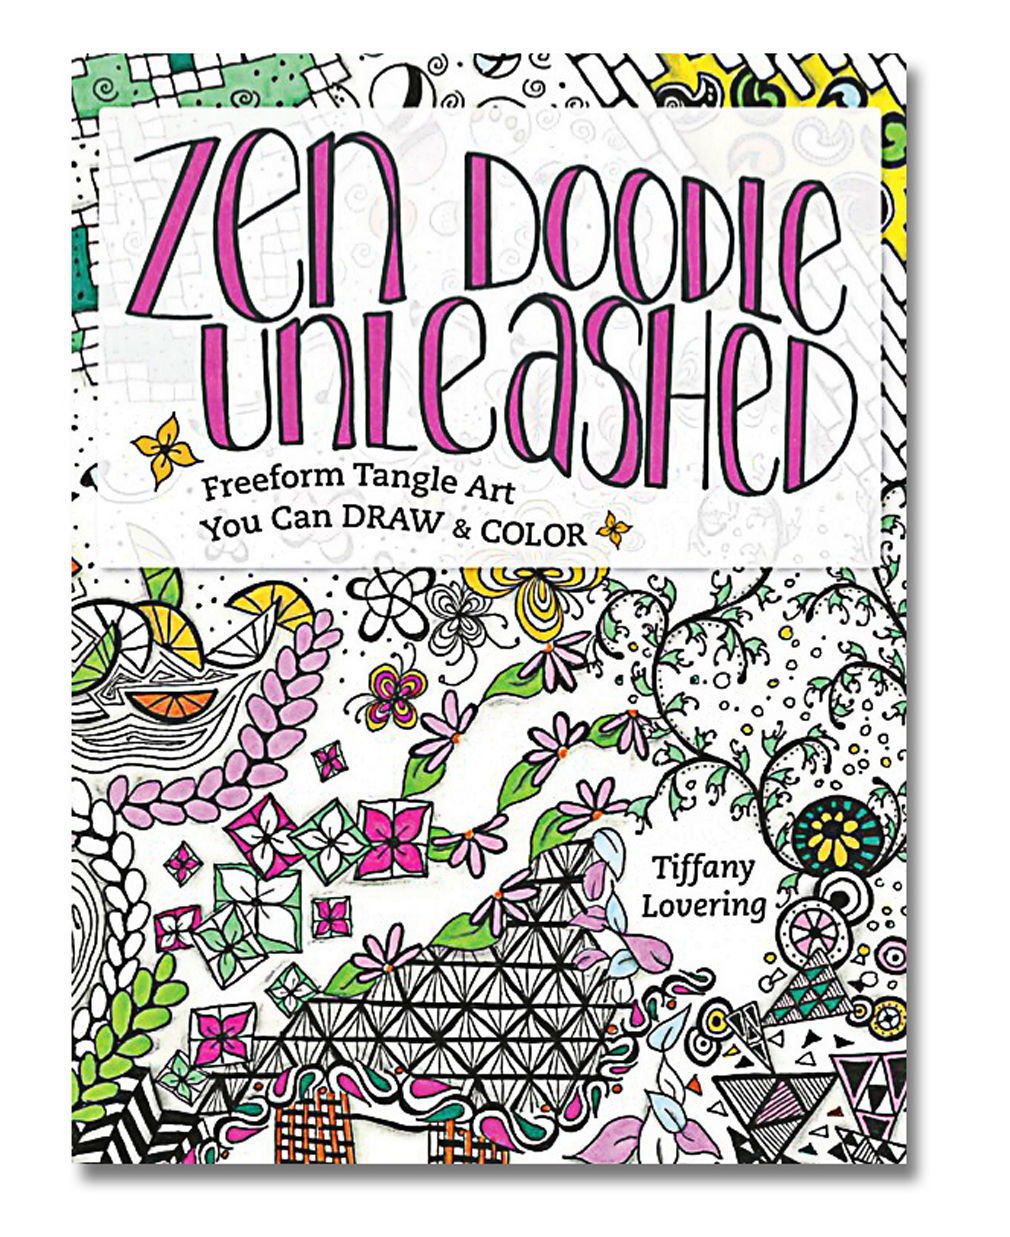 Primary image for Zen Doodle Unleashed Coloring Book: Freeform Tangle Art